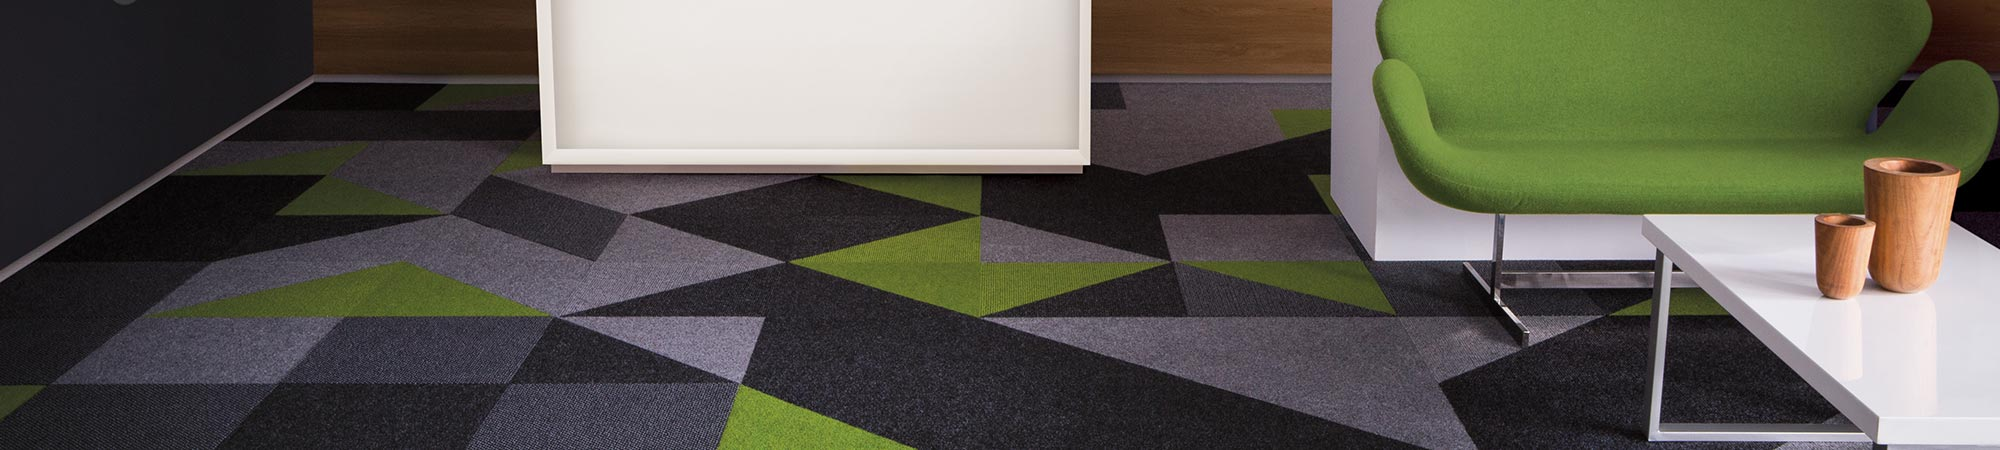 Night Sky | Heckmondwike FB | Commercial Carpets | Featured Image